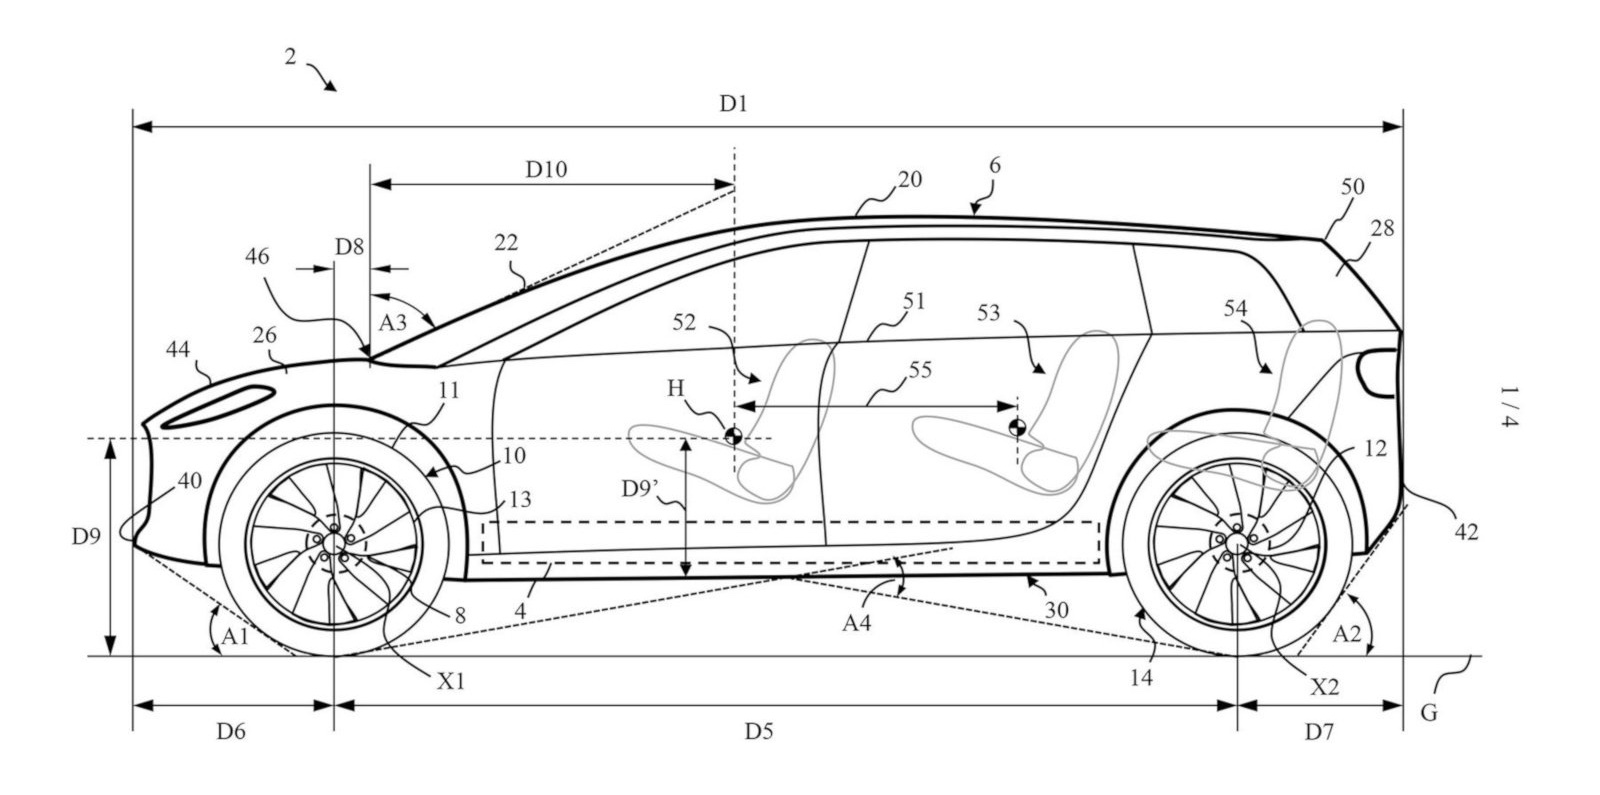 Dyson Electric Car Patents Reveal Possibilities Of Large Wheels 3rd Row Seating